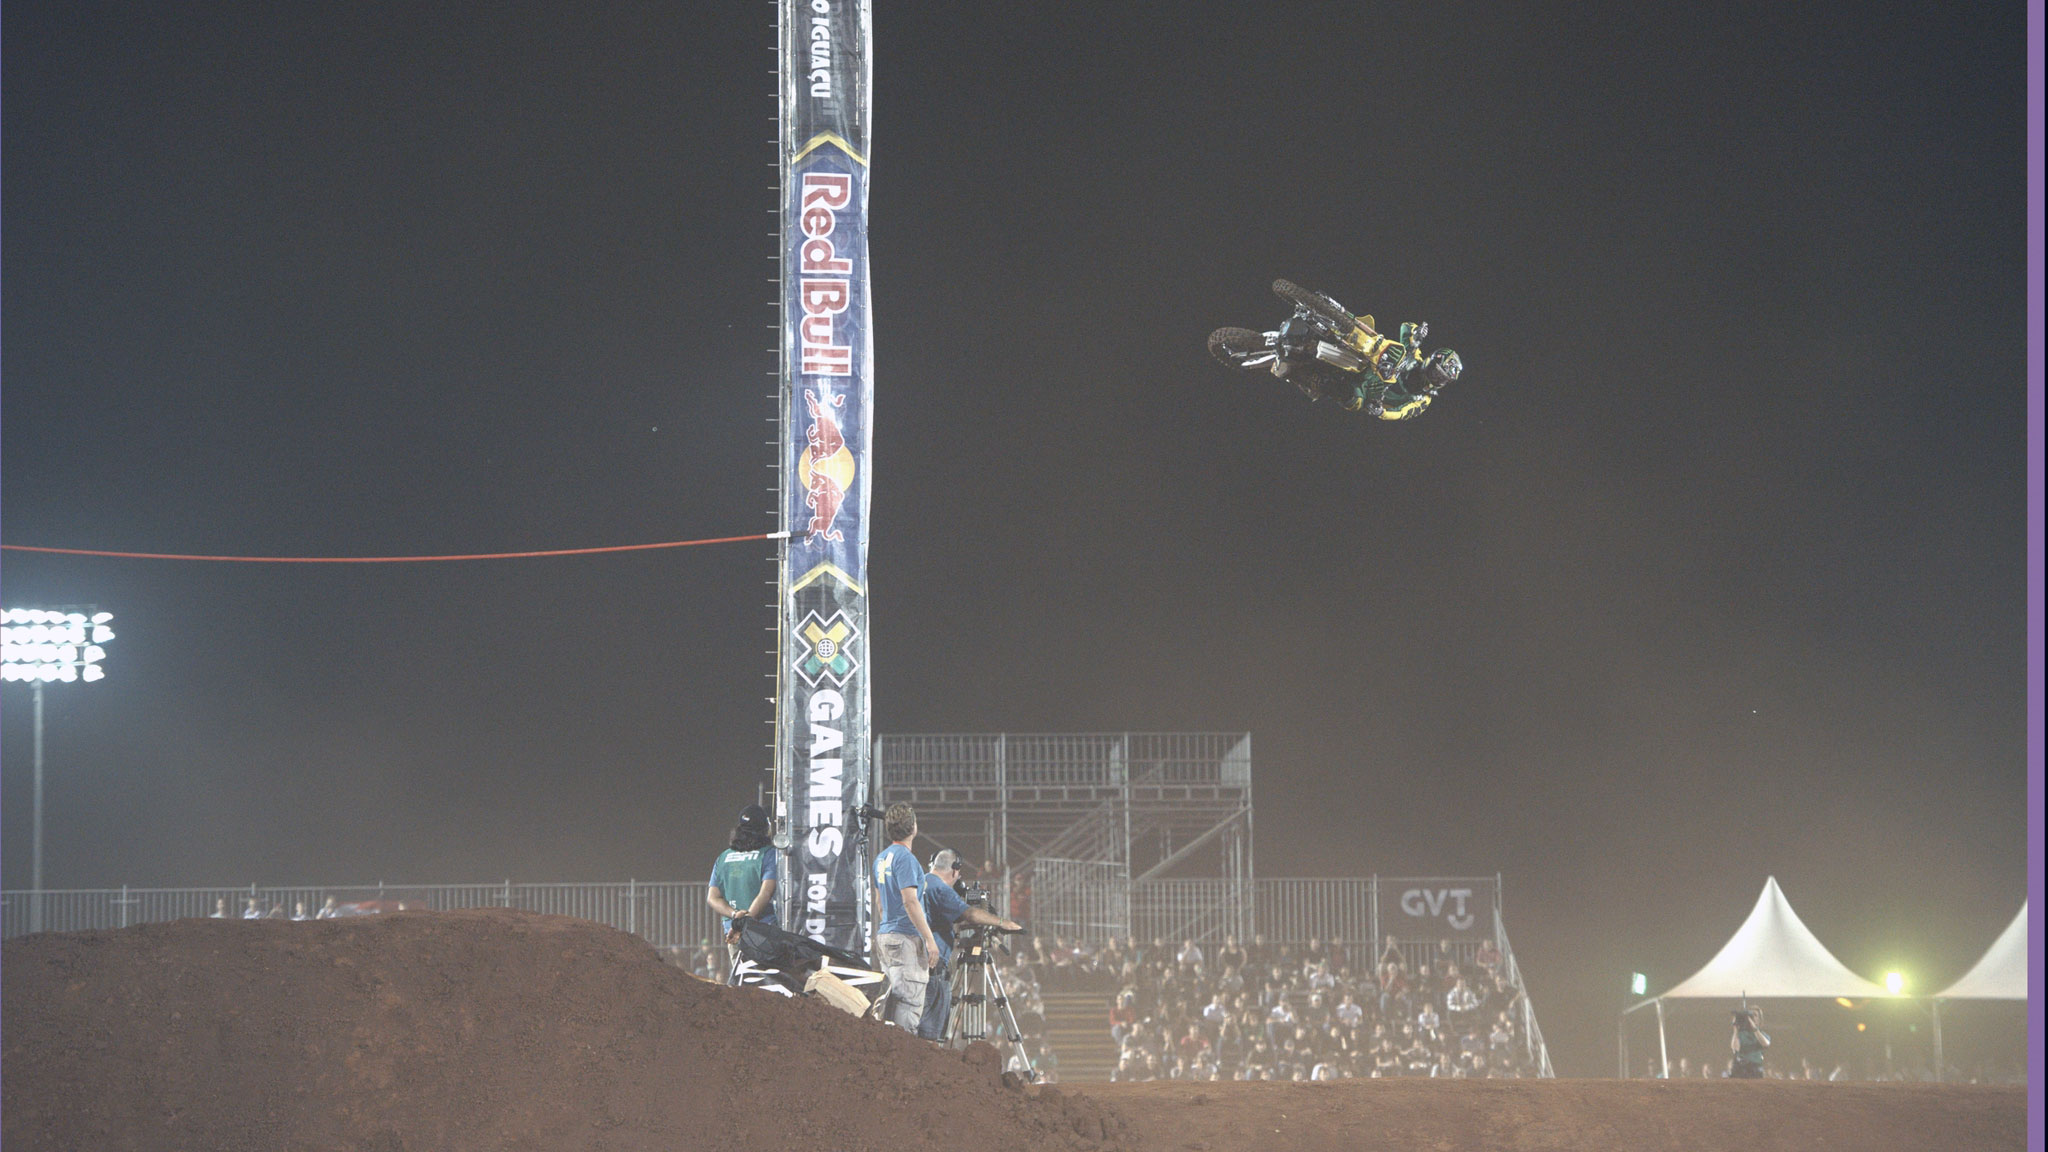 Jeremy Twitch Stenberg won his third Moto X Best Whip contest, with some help from Twitter fans.